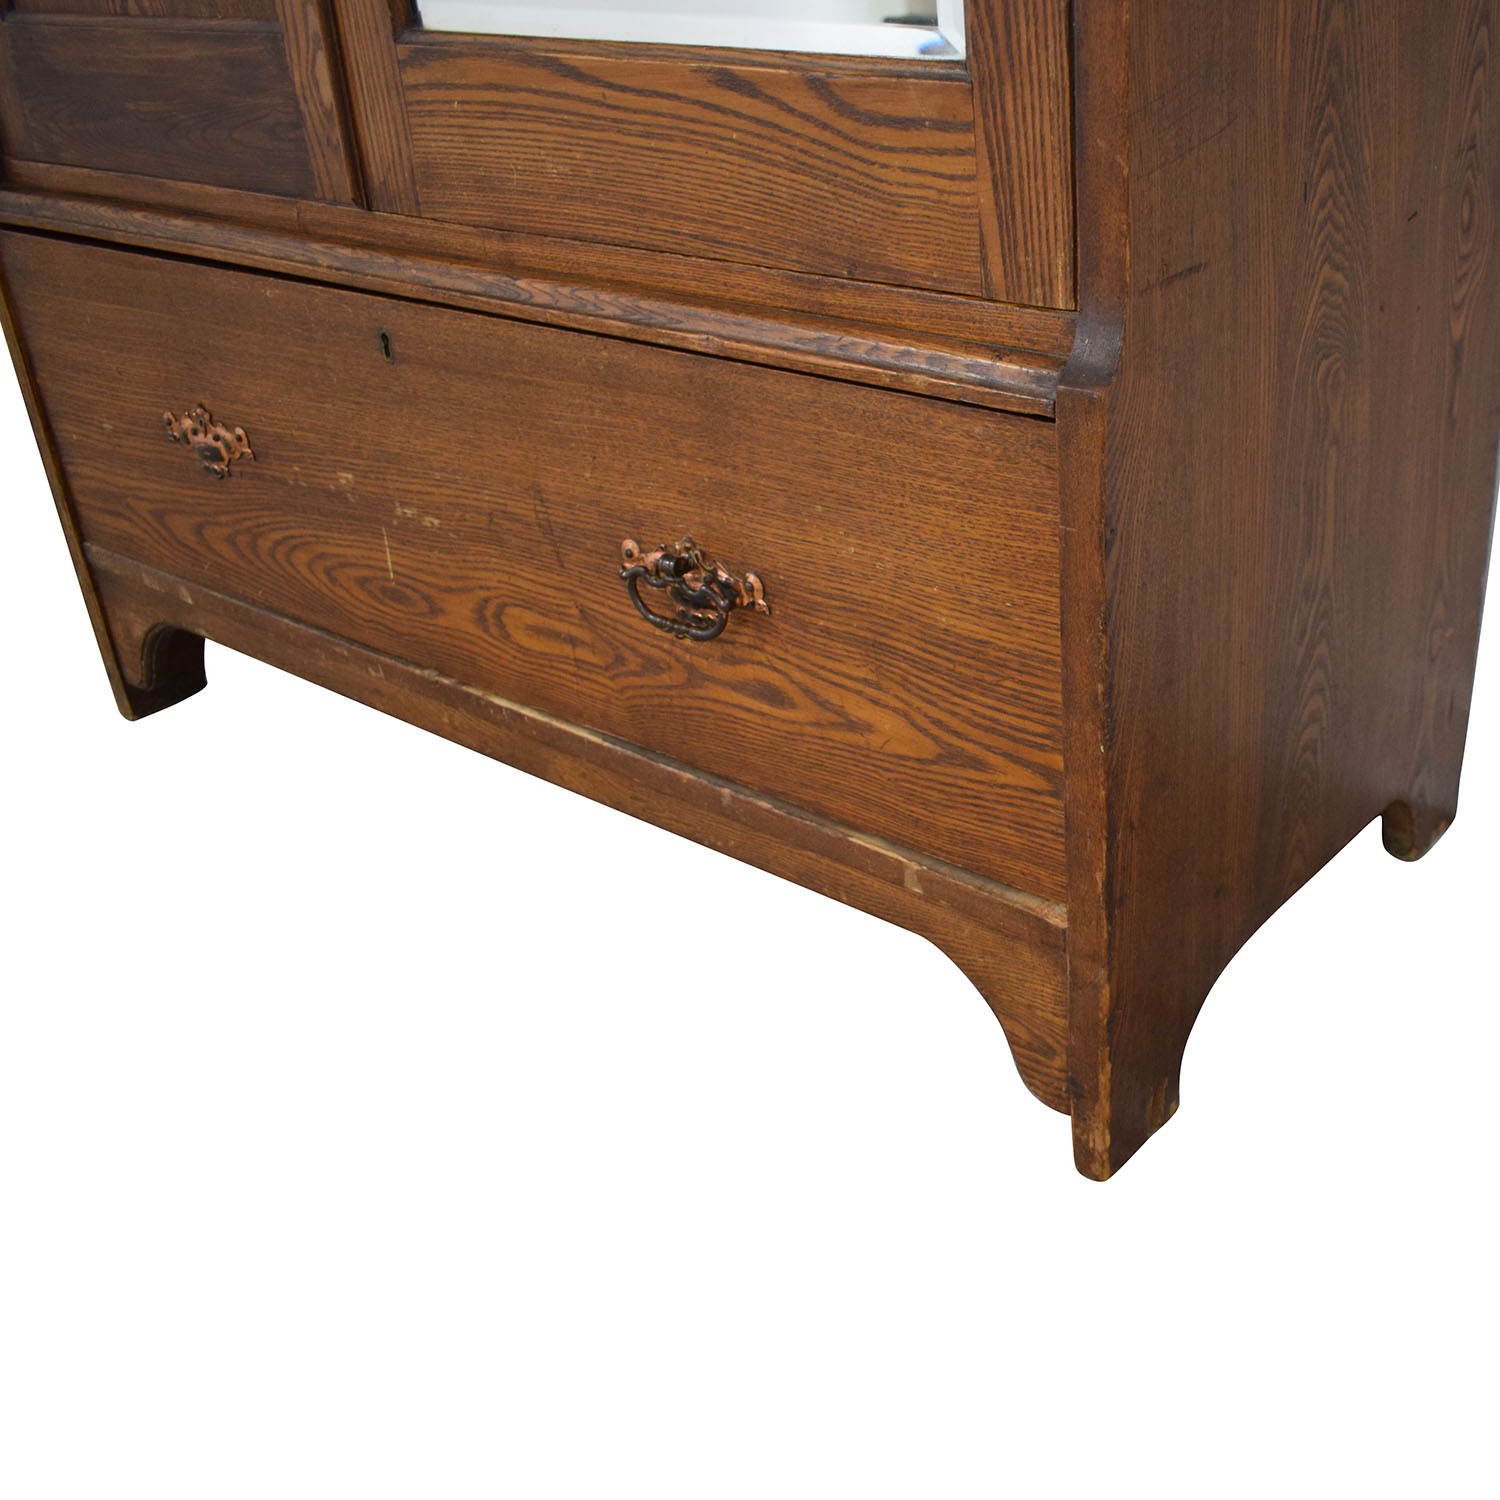 Vintage Arts and Crafts Armoire used